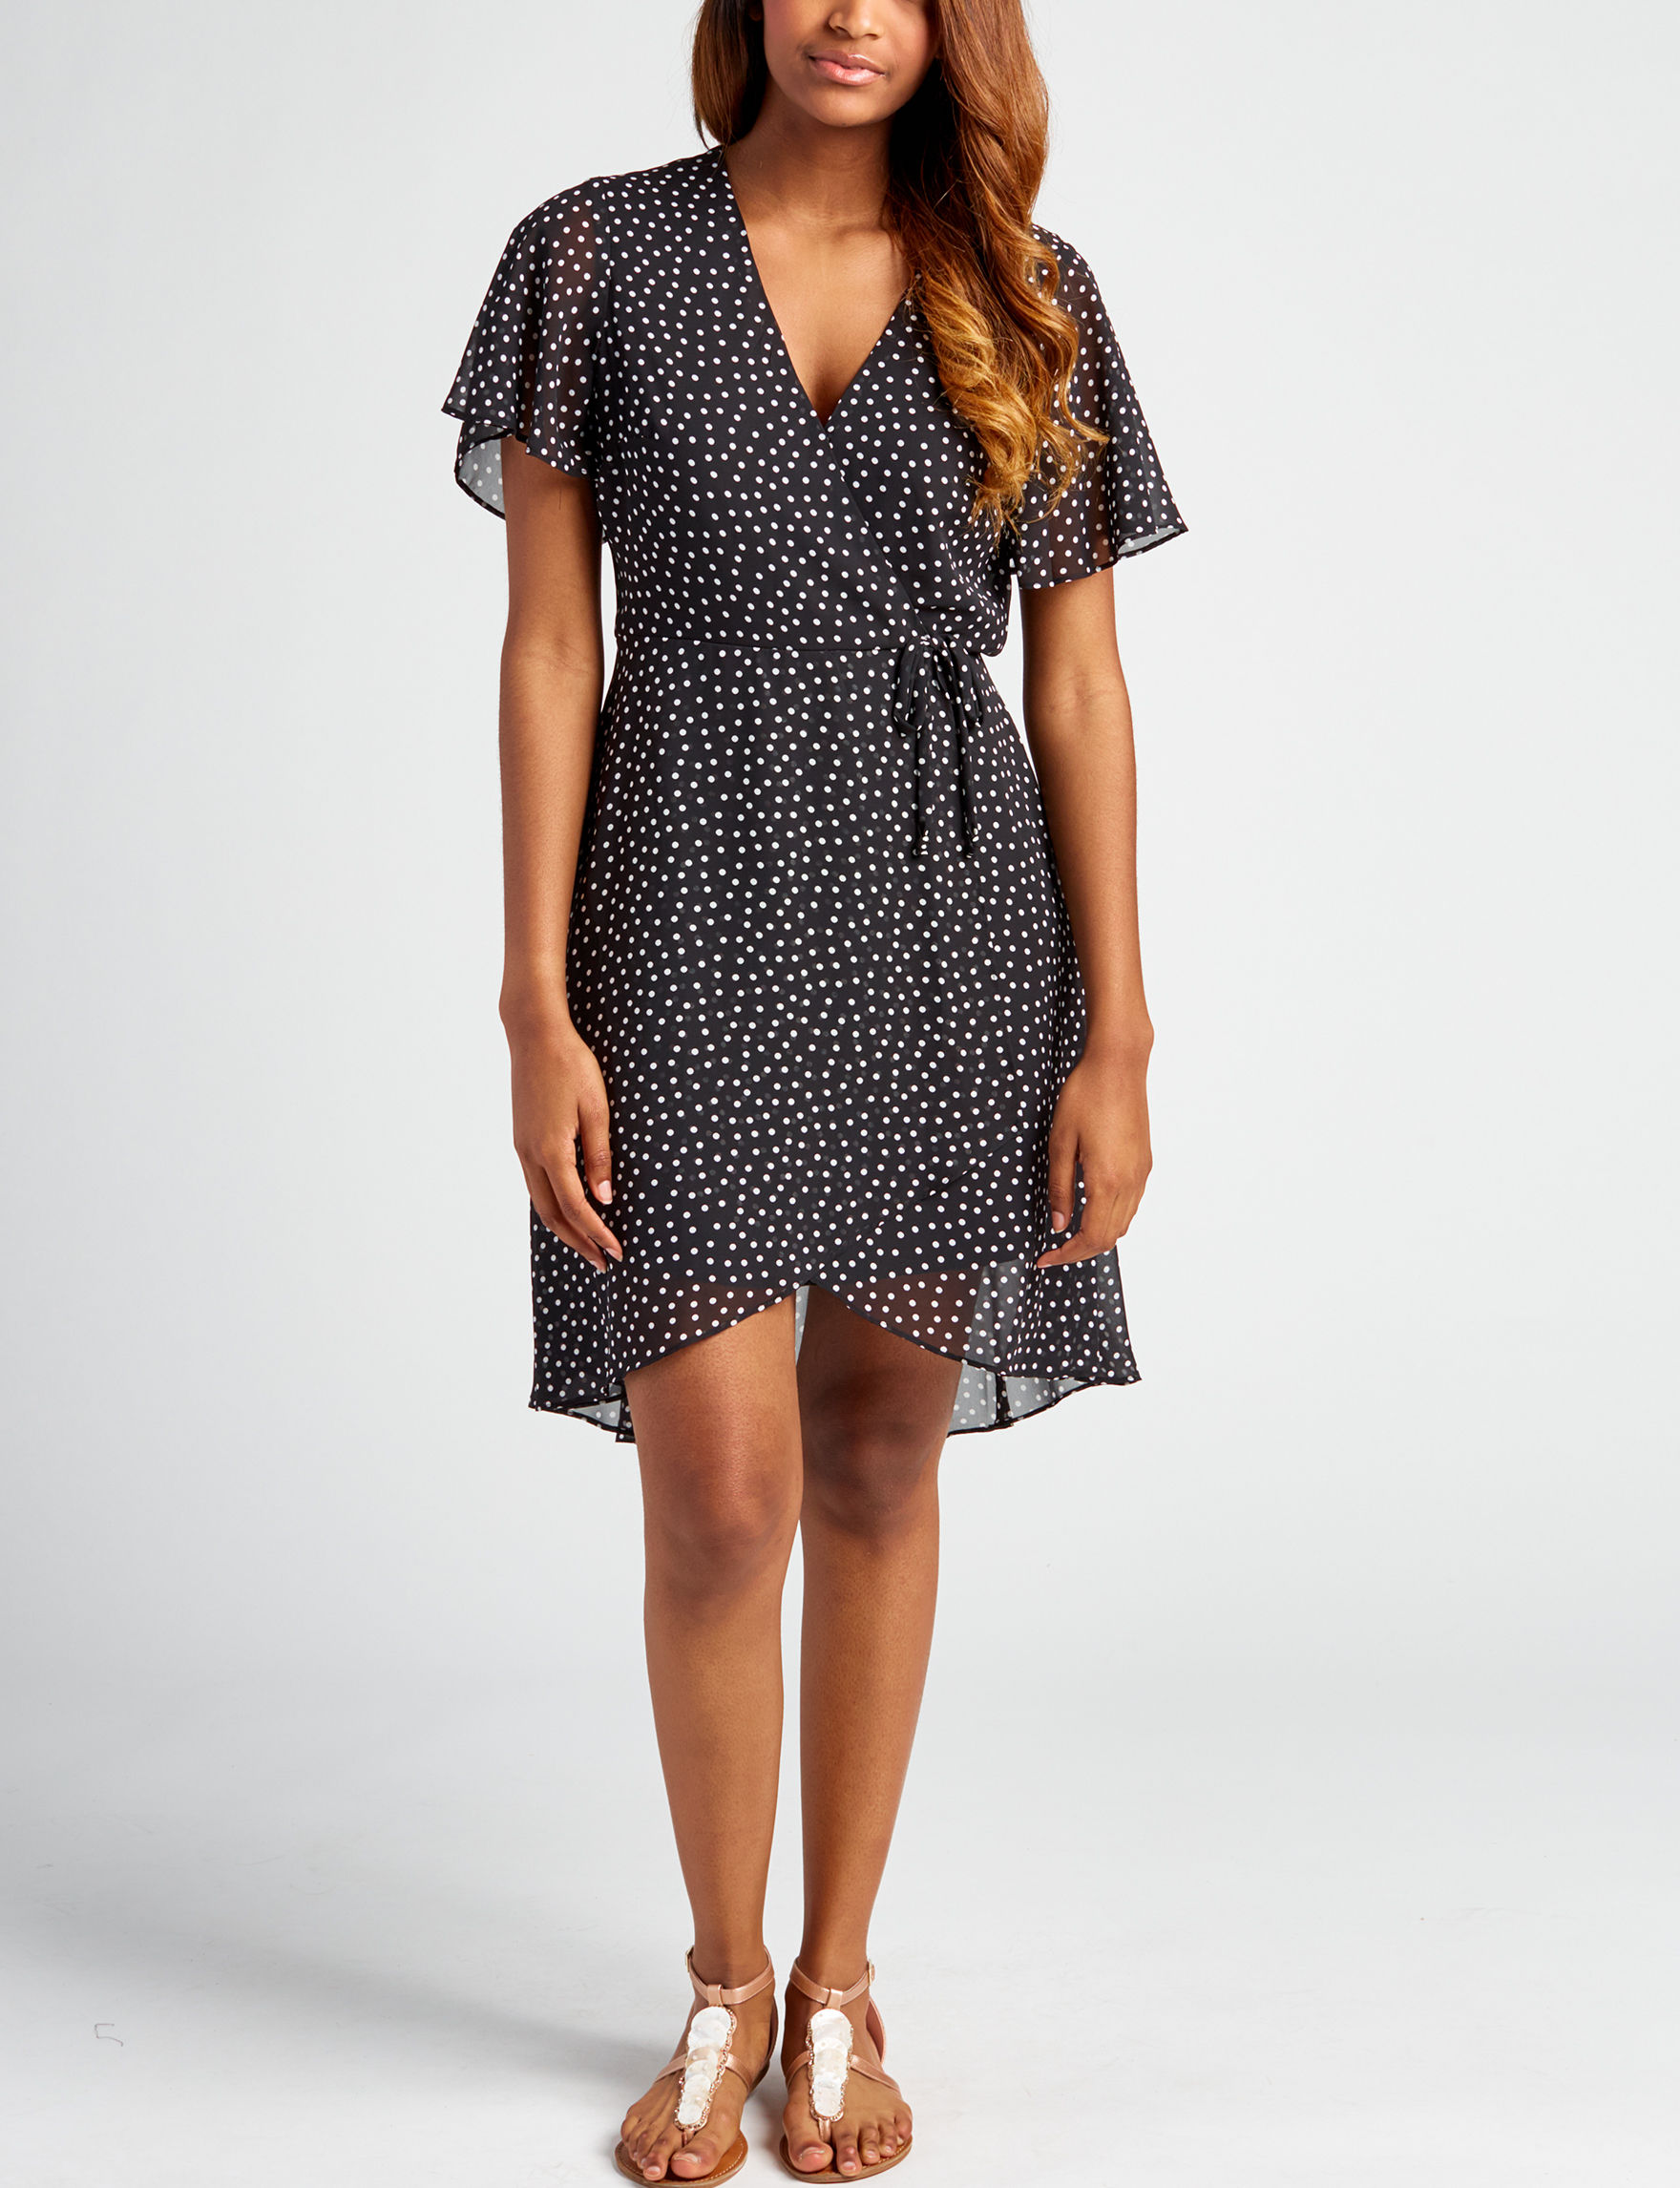 Sequin Hearts Black Cocktail & Party Everyday & Casual Fit & Flare Dresses